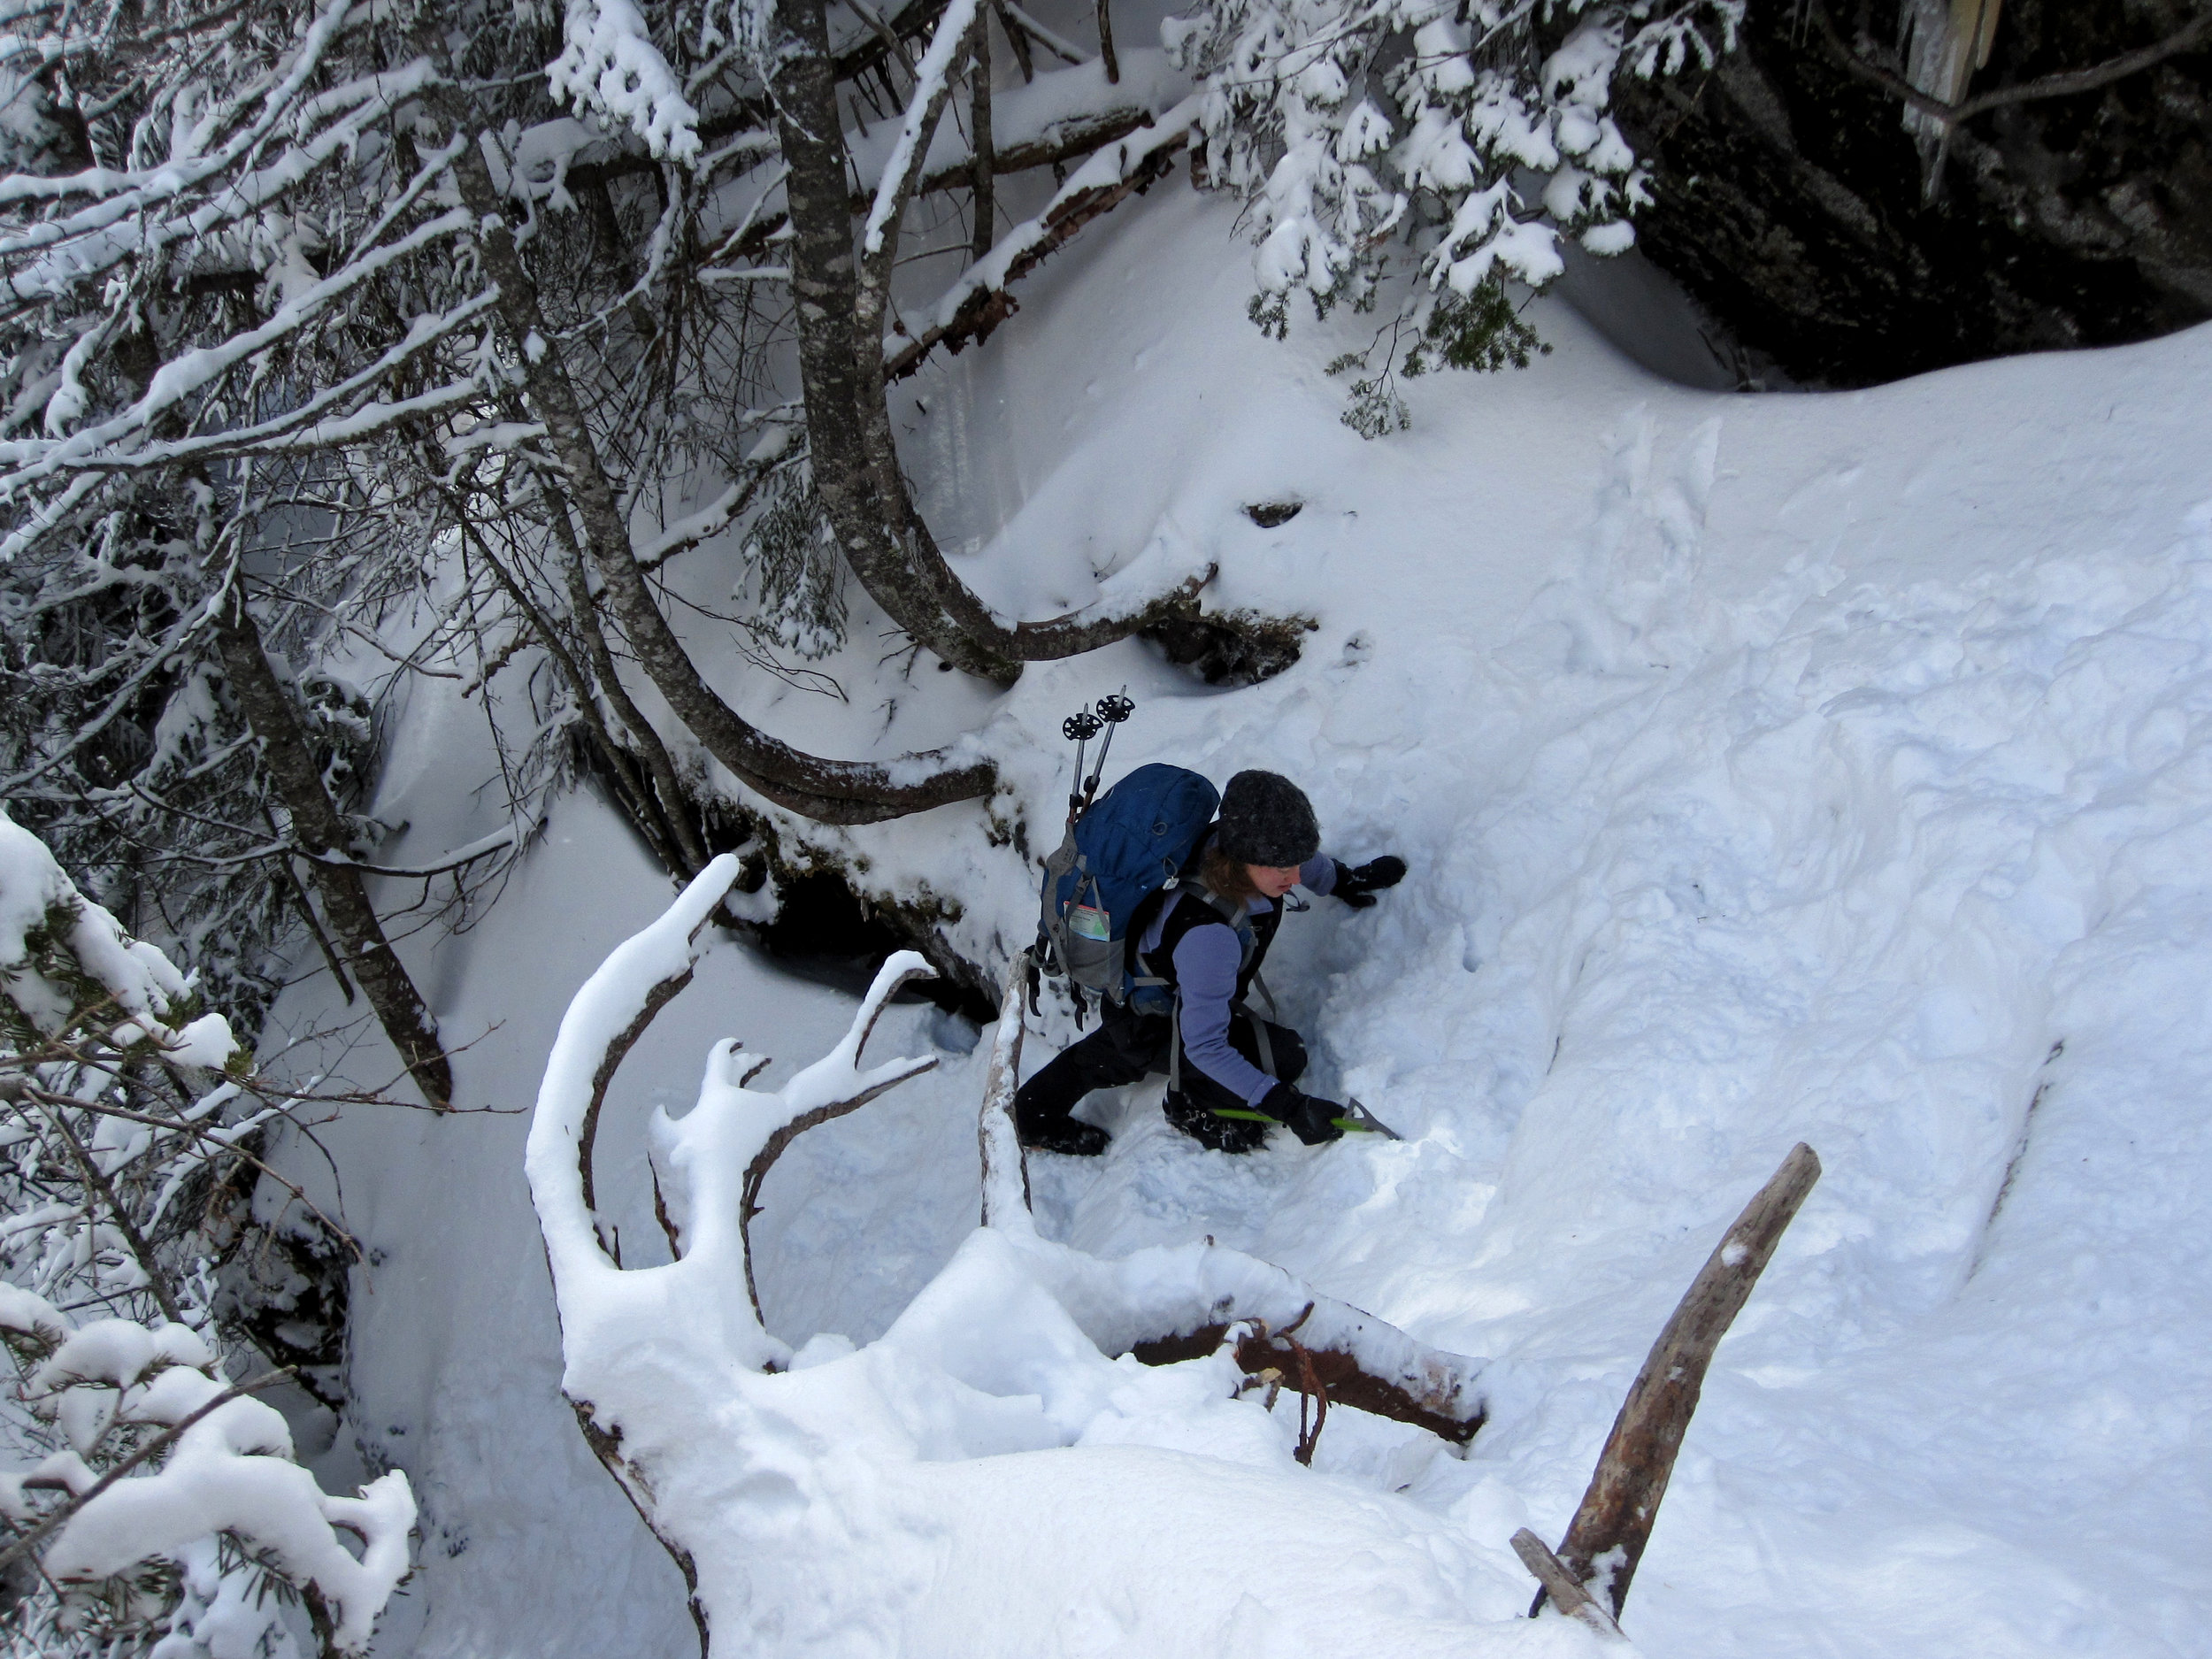 The steep trail continues!